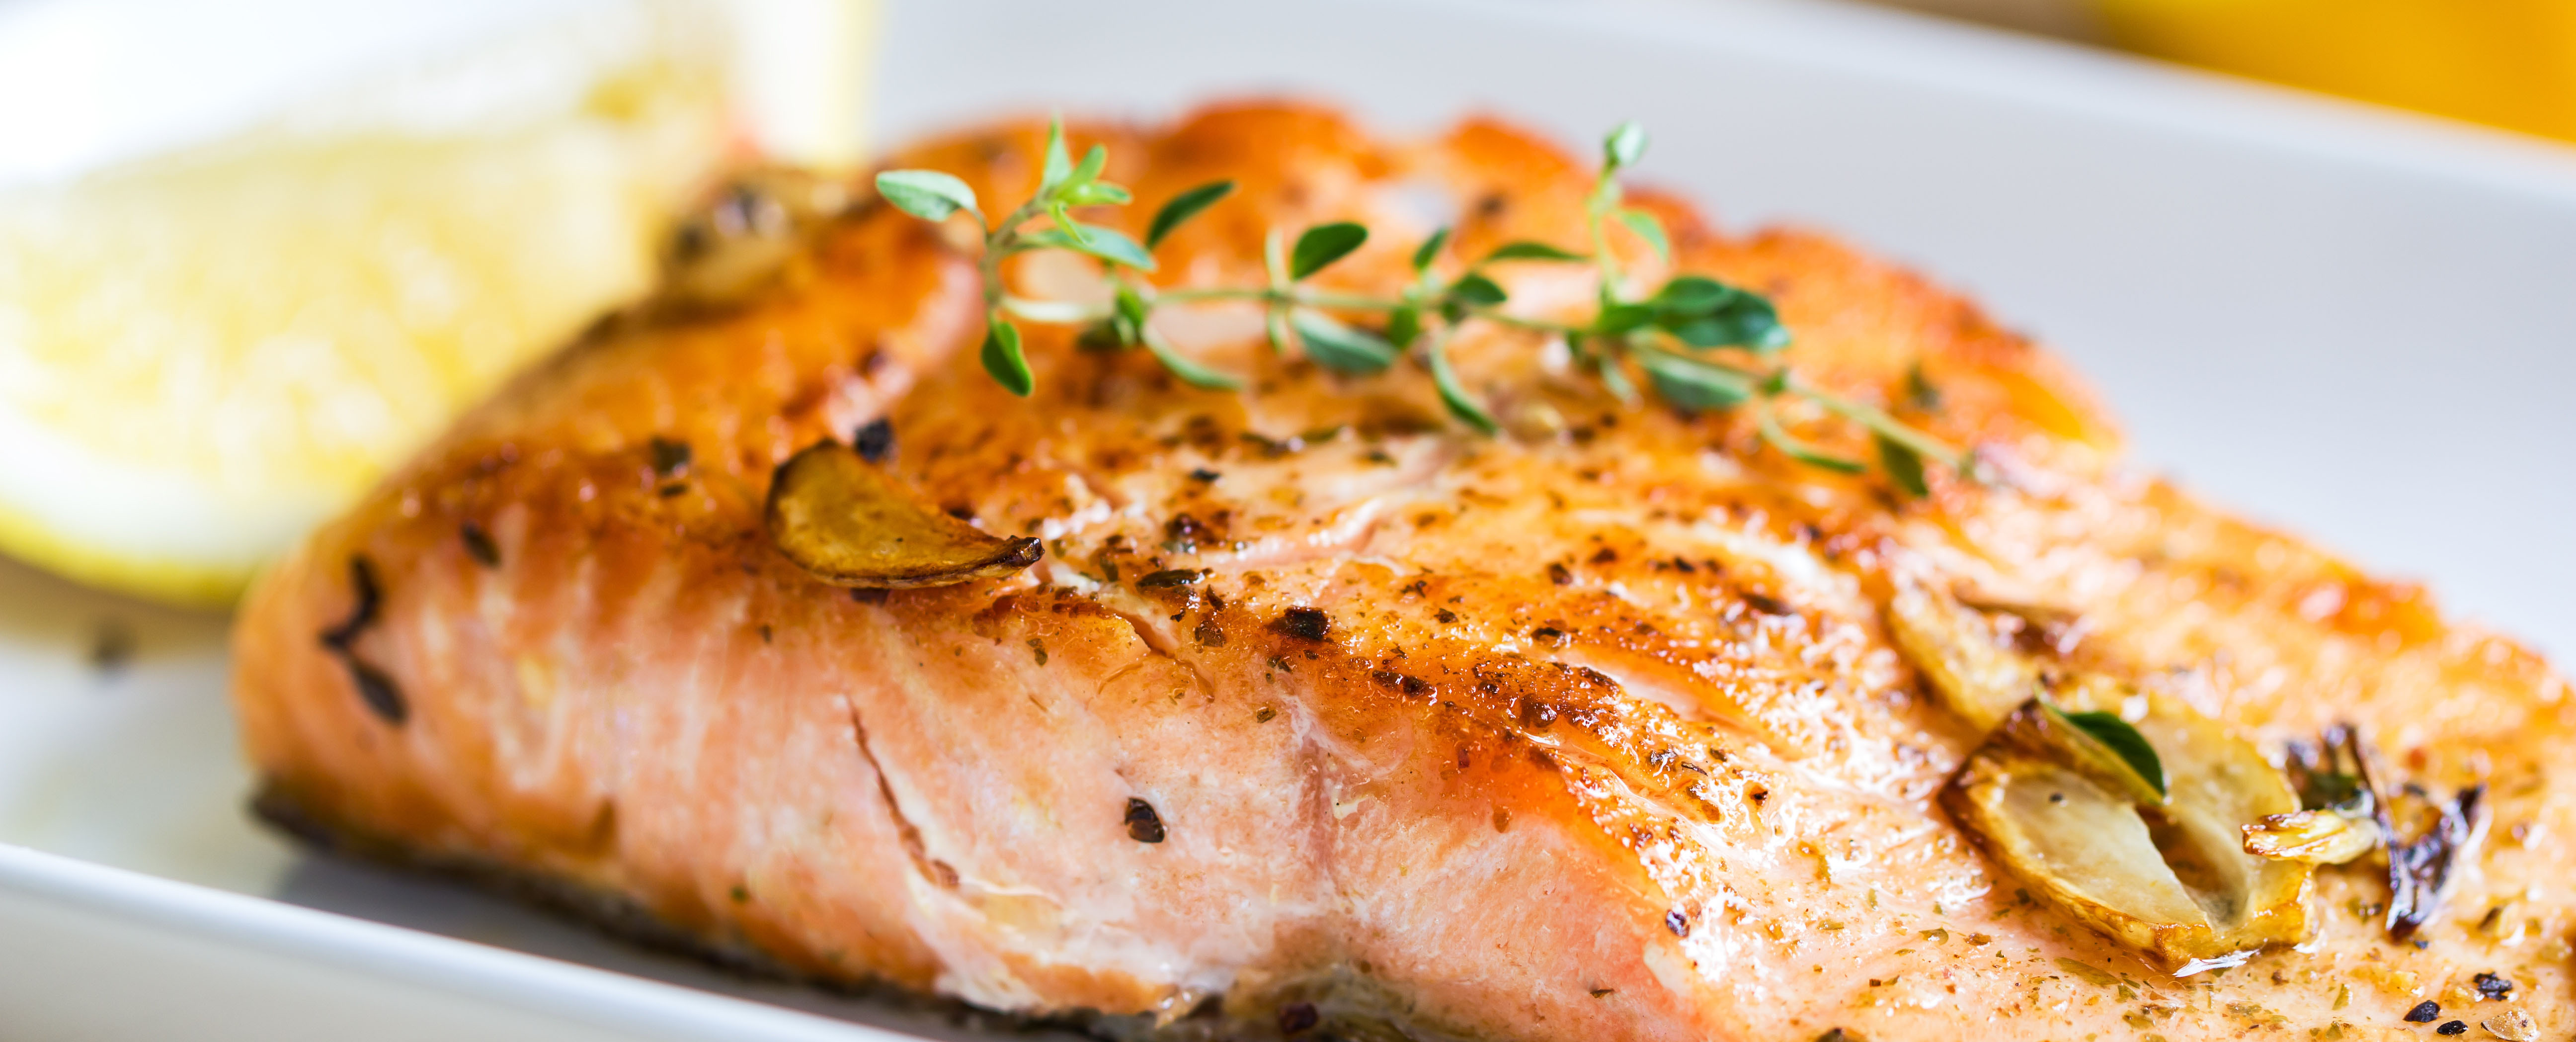 Garlic lemon baked salmon